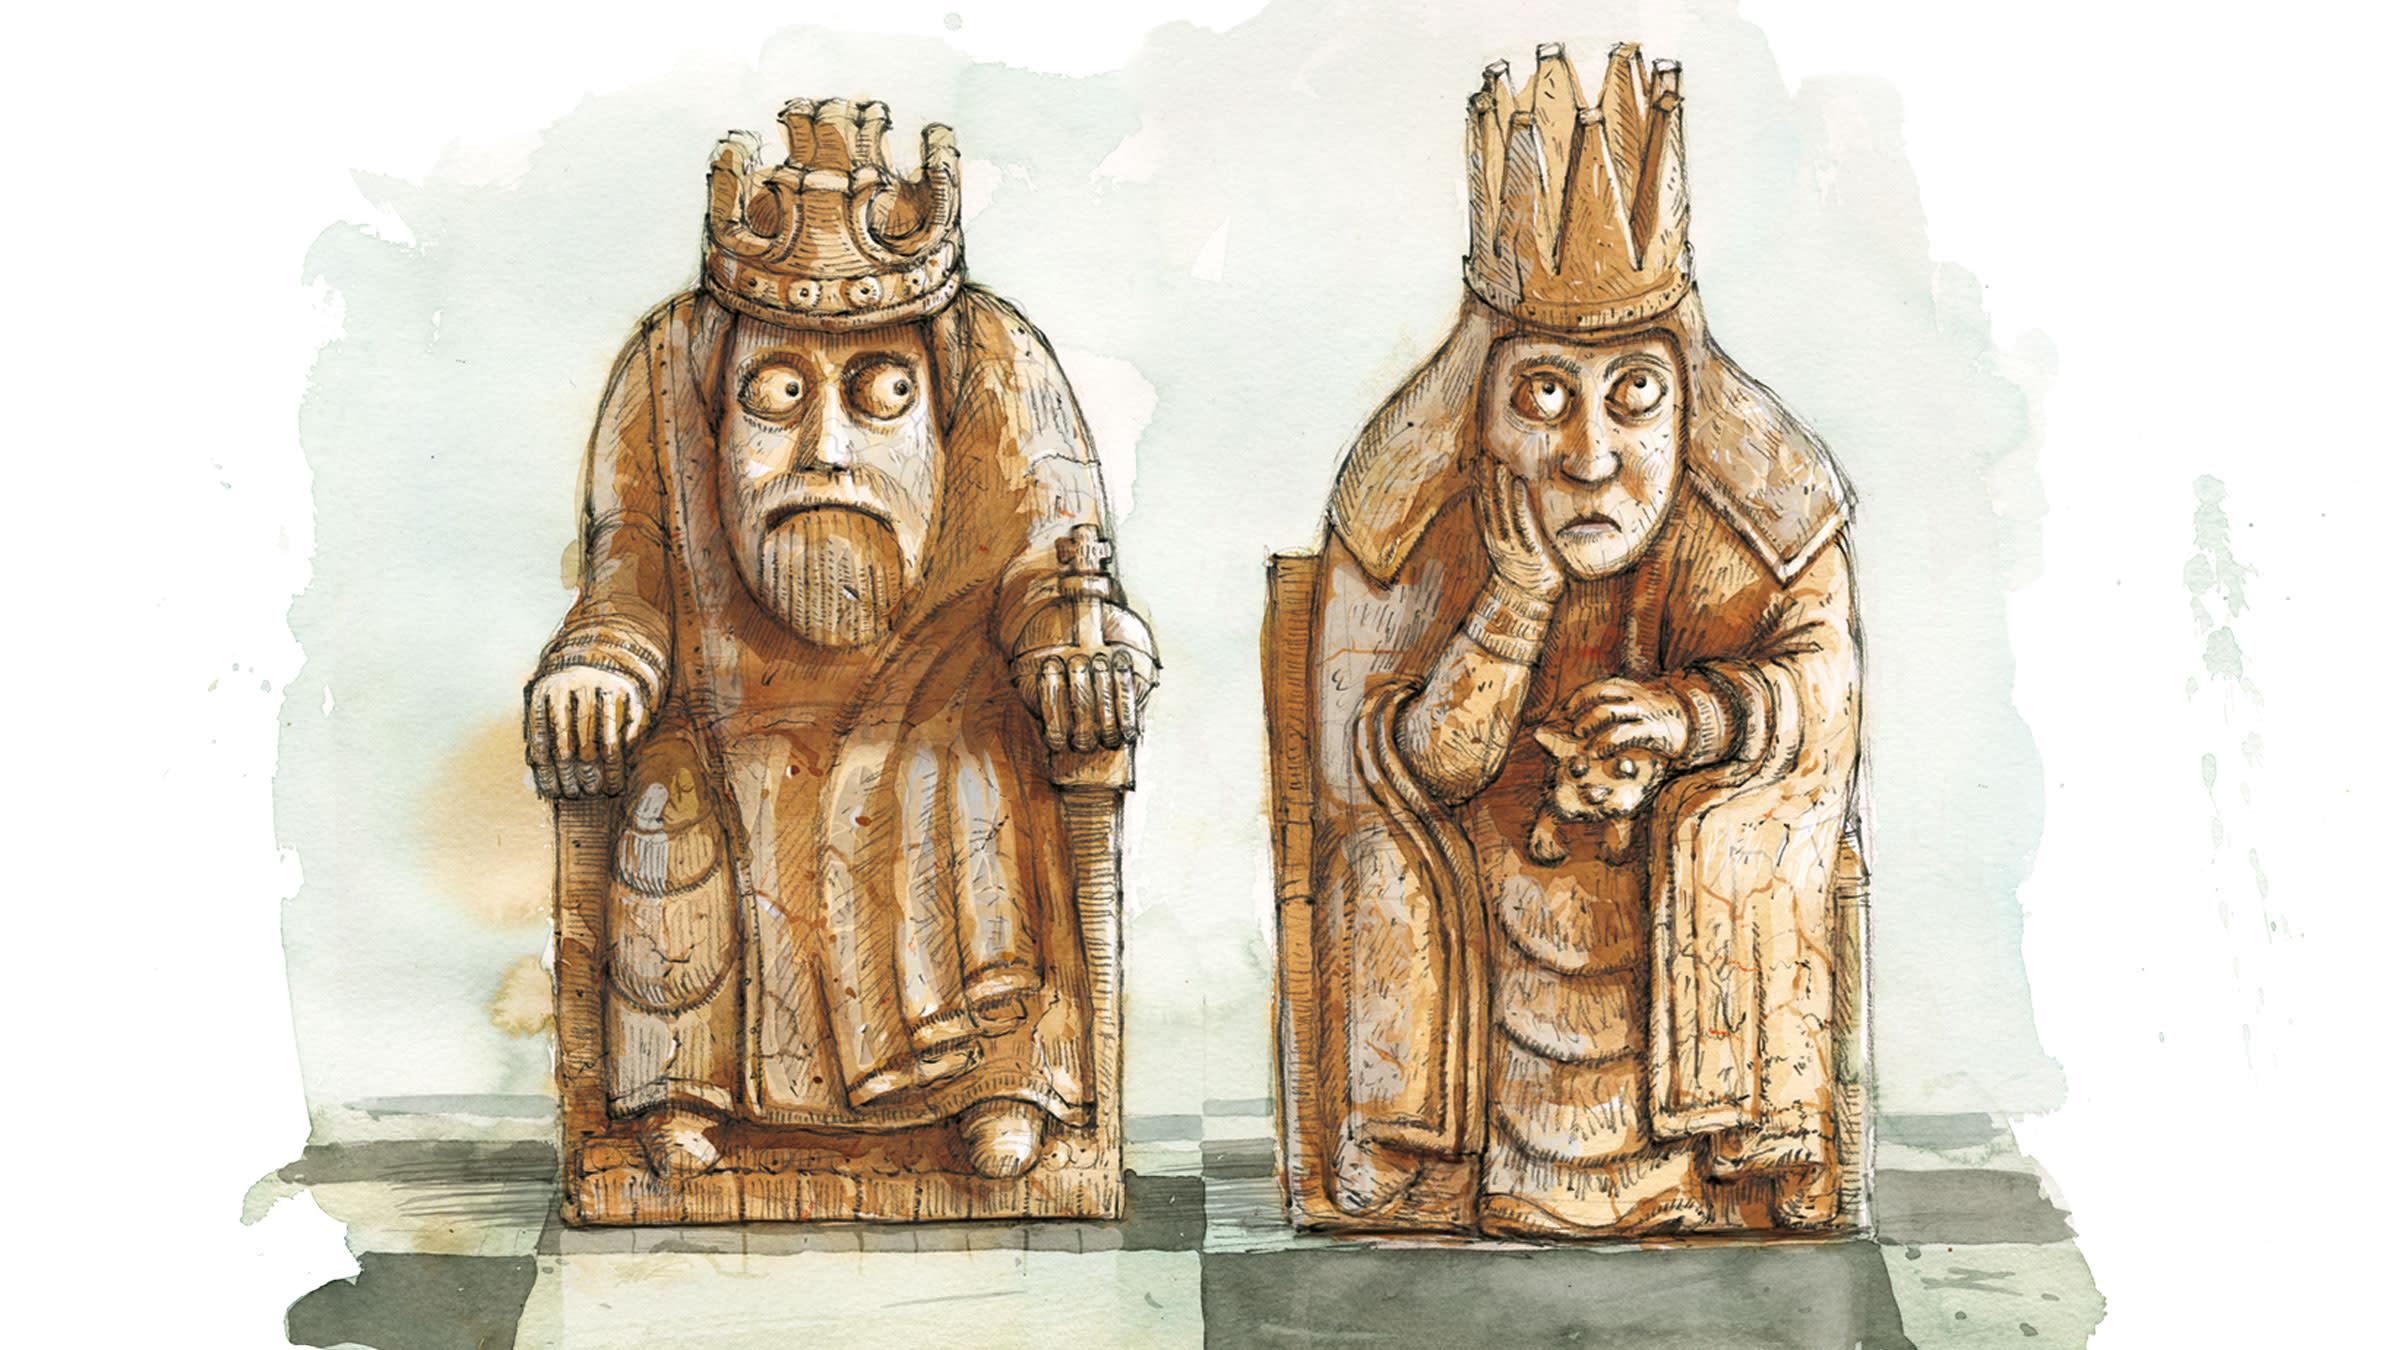 chess-pieces-illustration-image-philosophers-stone